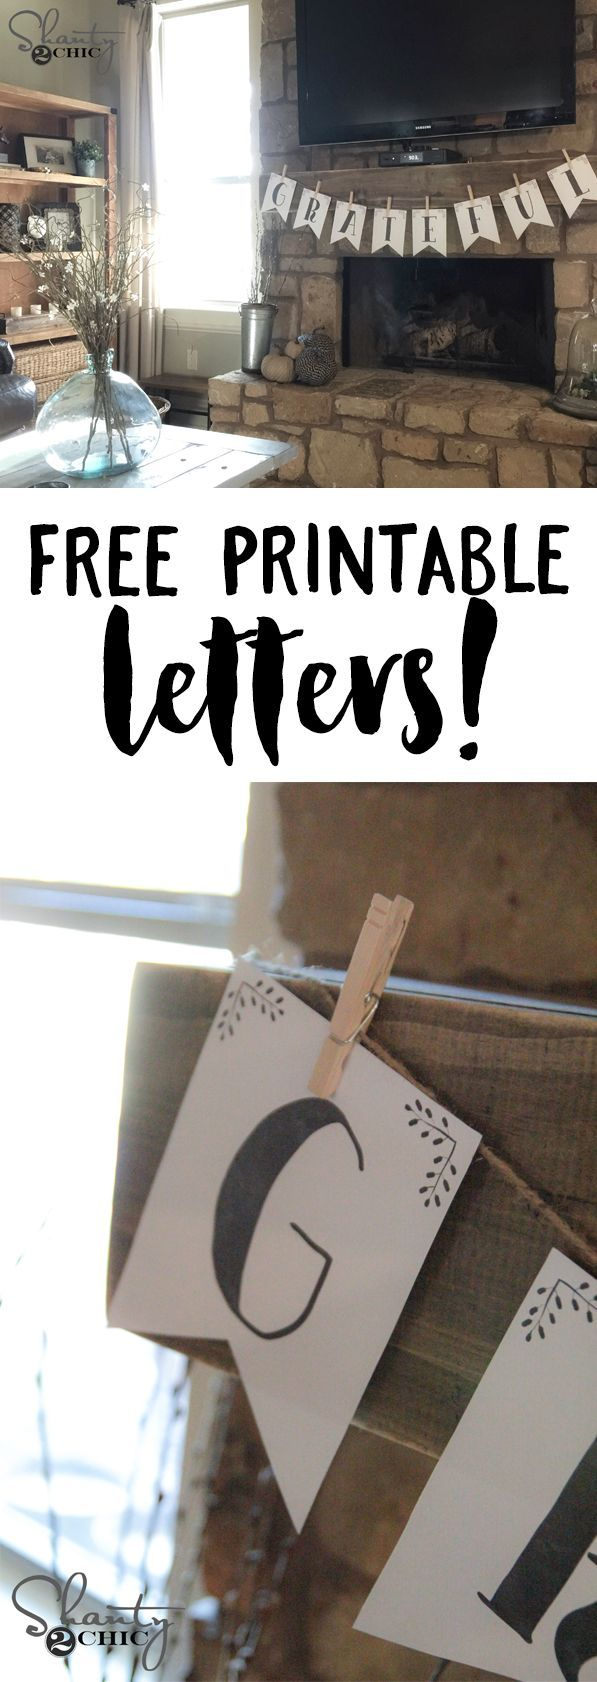 free bridal shower printable banner%0A FREE printable letter banners  You can print the entire alphabet for free